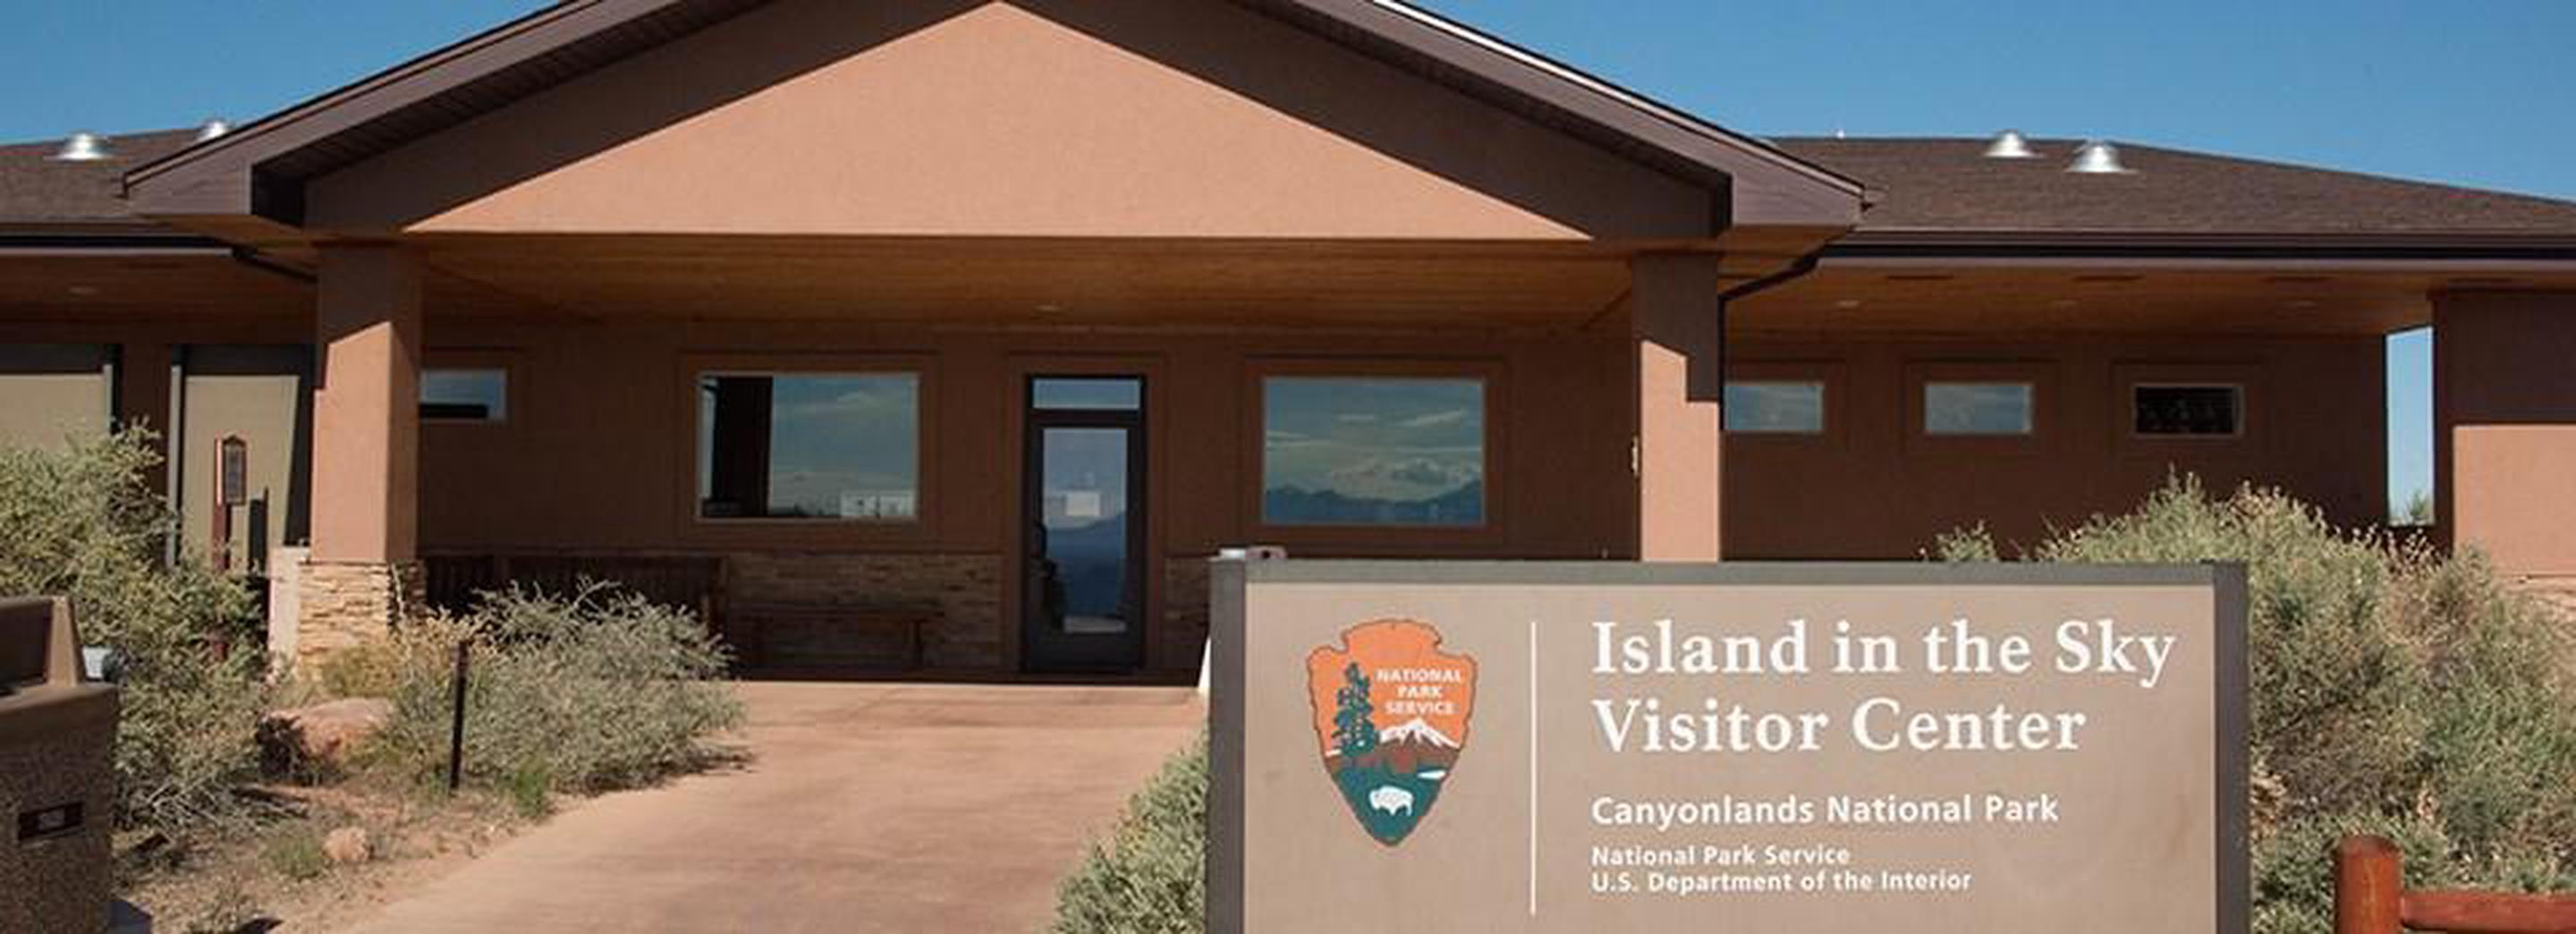 Island in the Sky Visitor CenterGet information, watch the park film, and shop at the Island in the Sky Visitor Center.